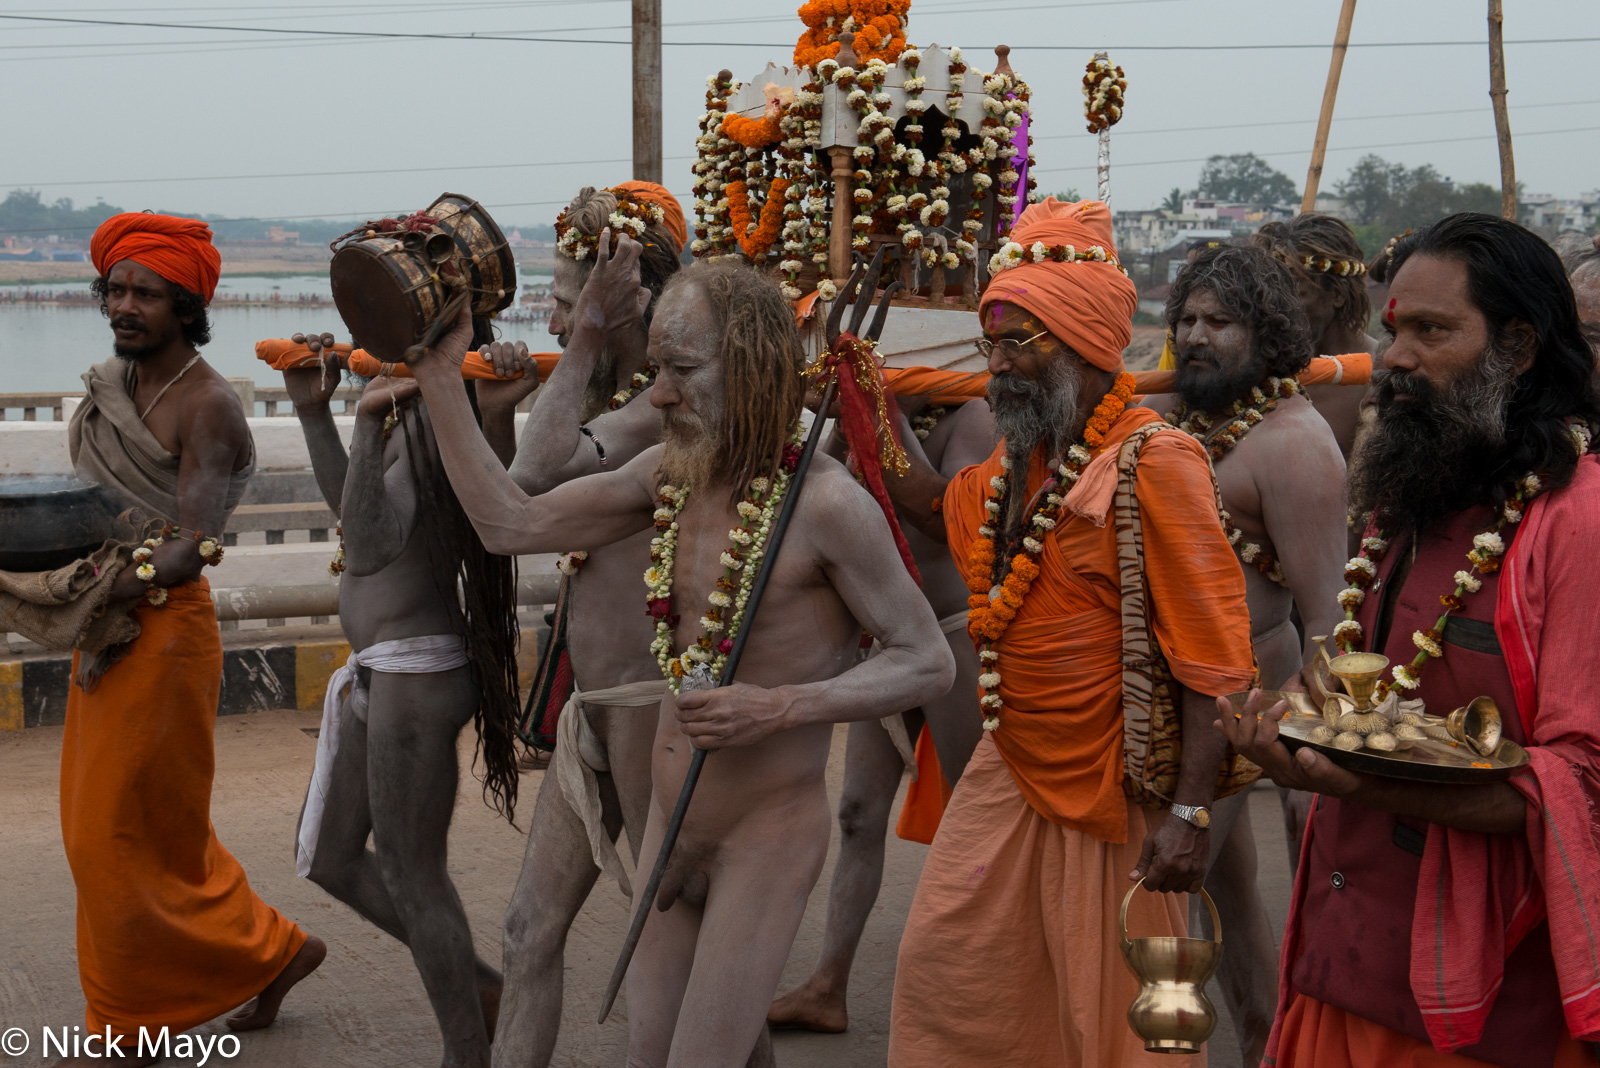 Chhattisgarh, Festival, India, Procession, Sadhu, photo